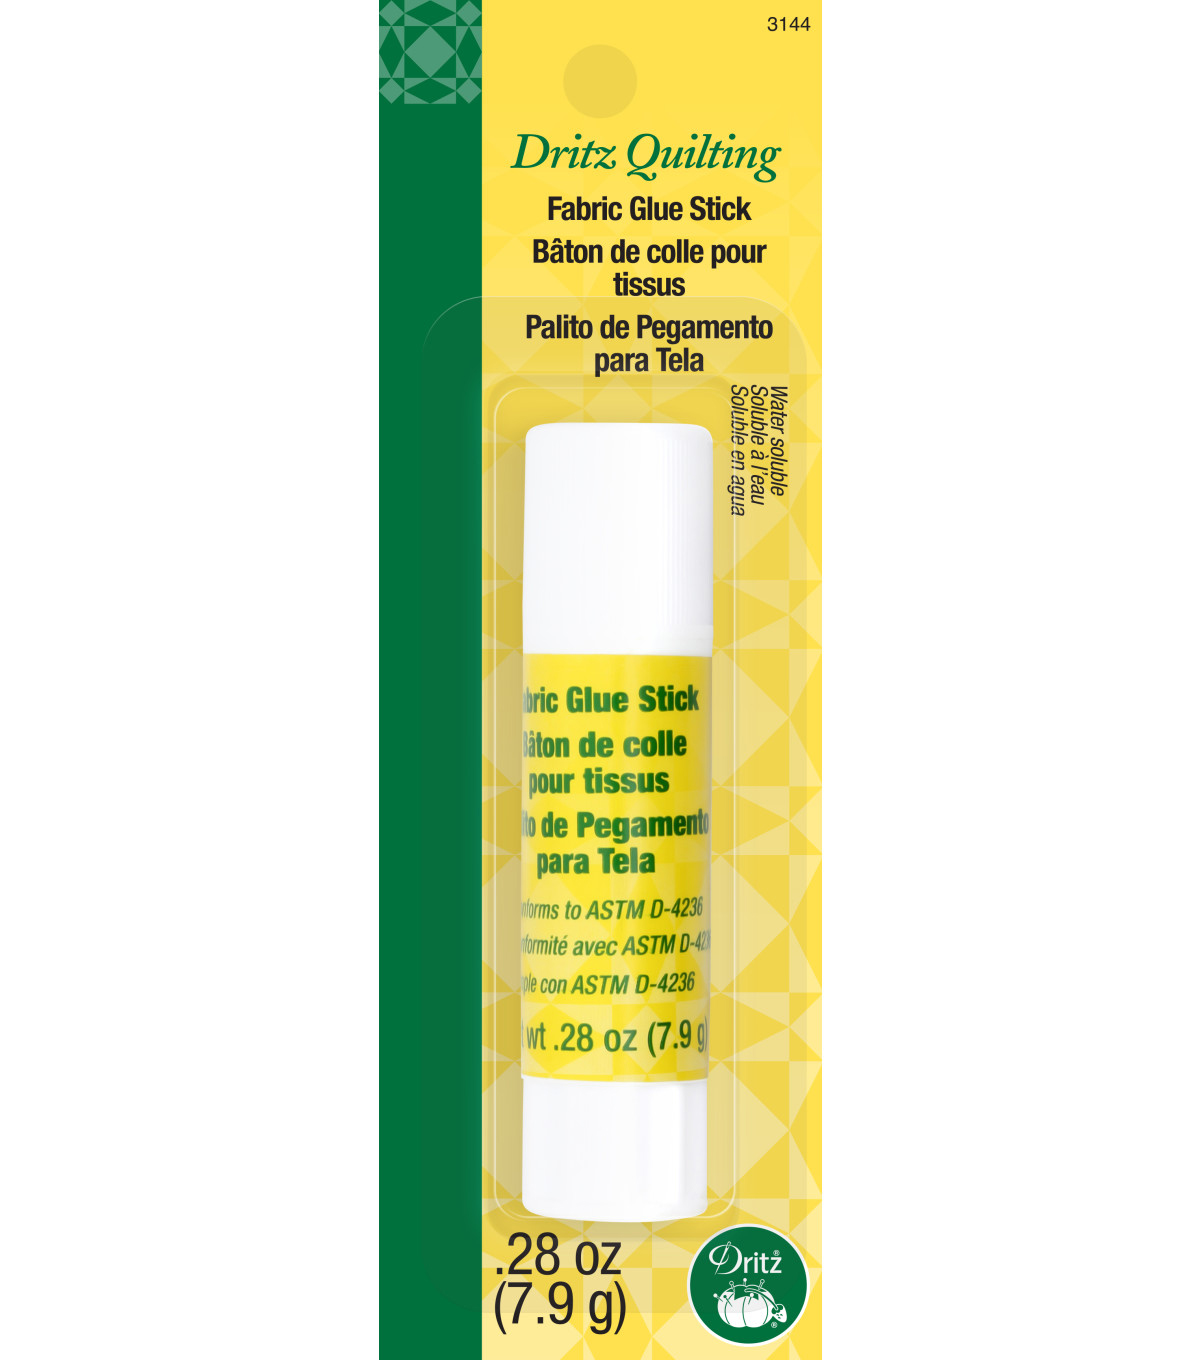 Dritz Quilting Fabric Glue Stick